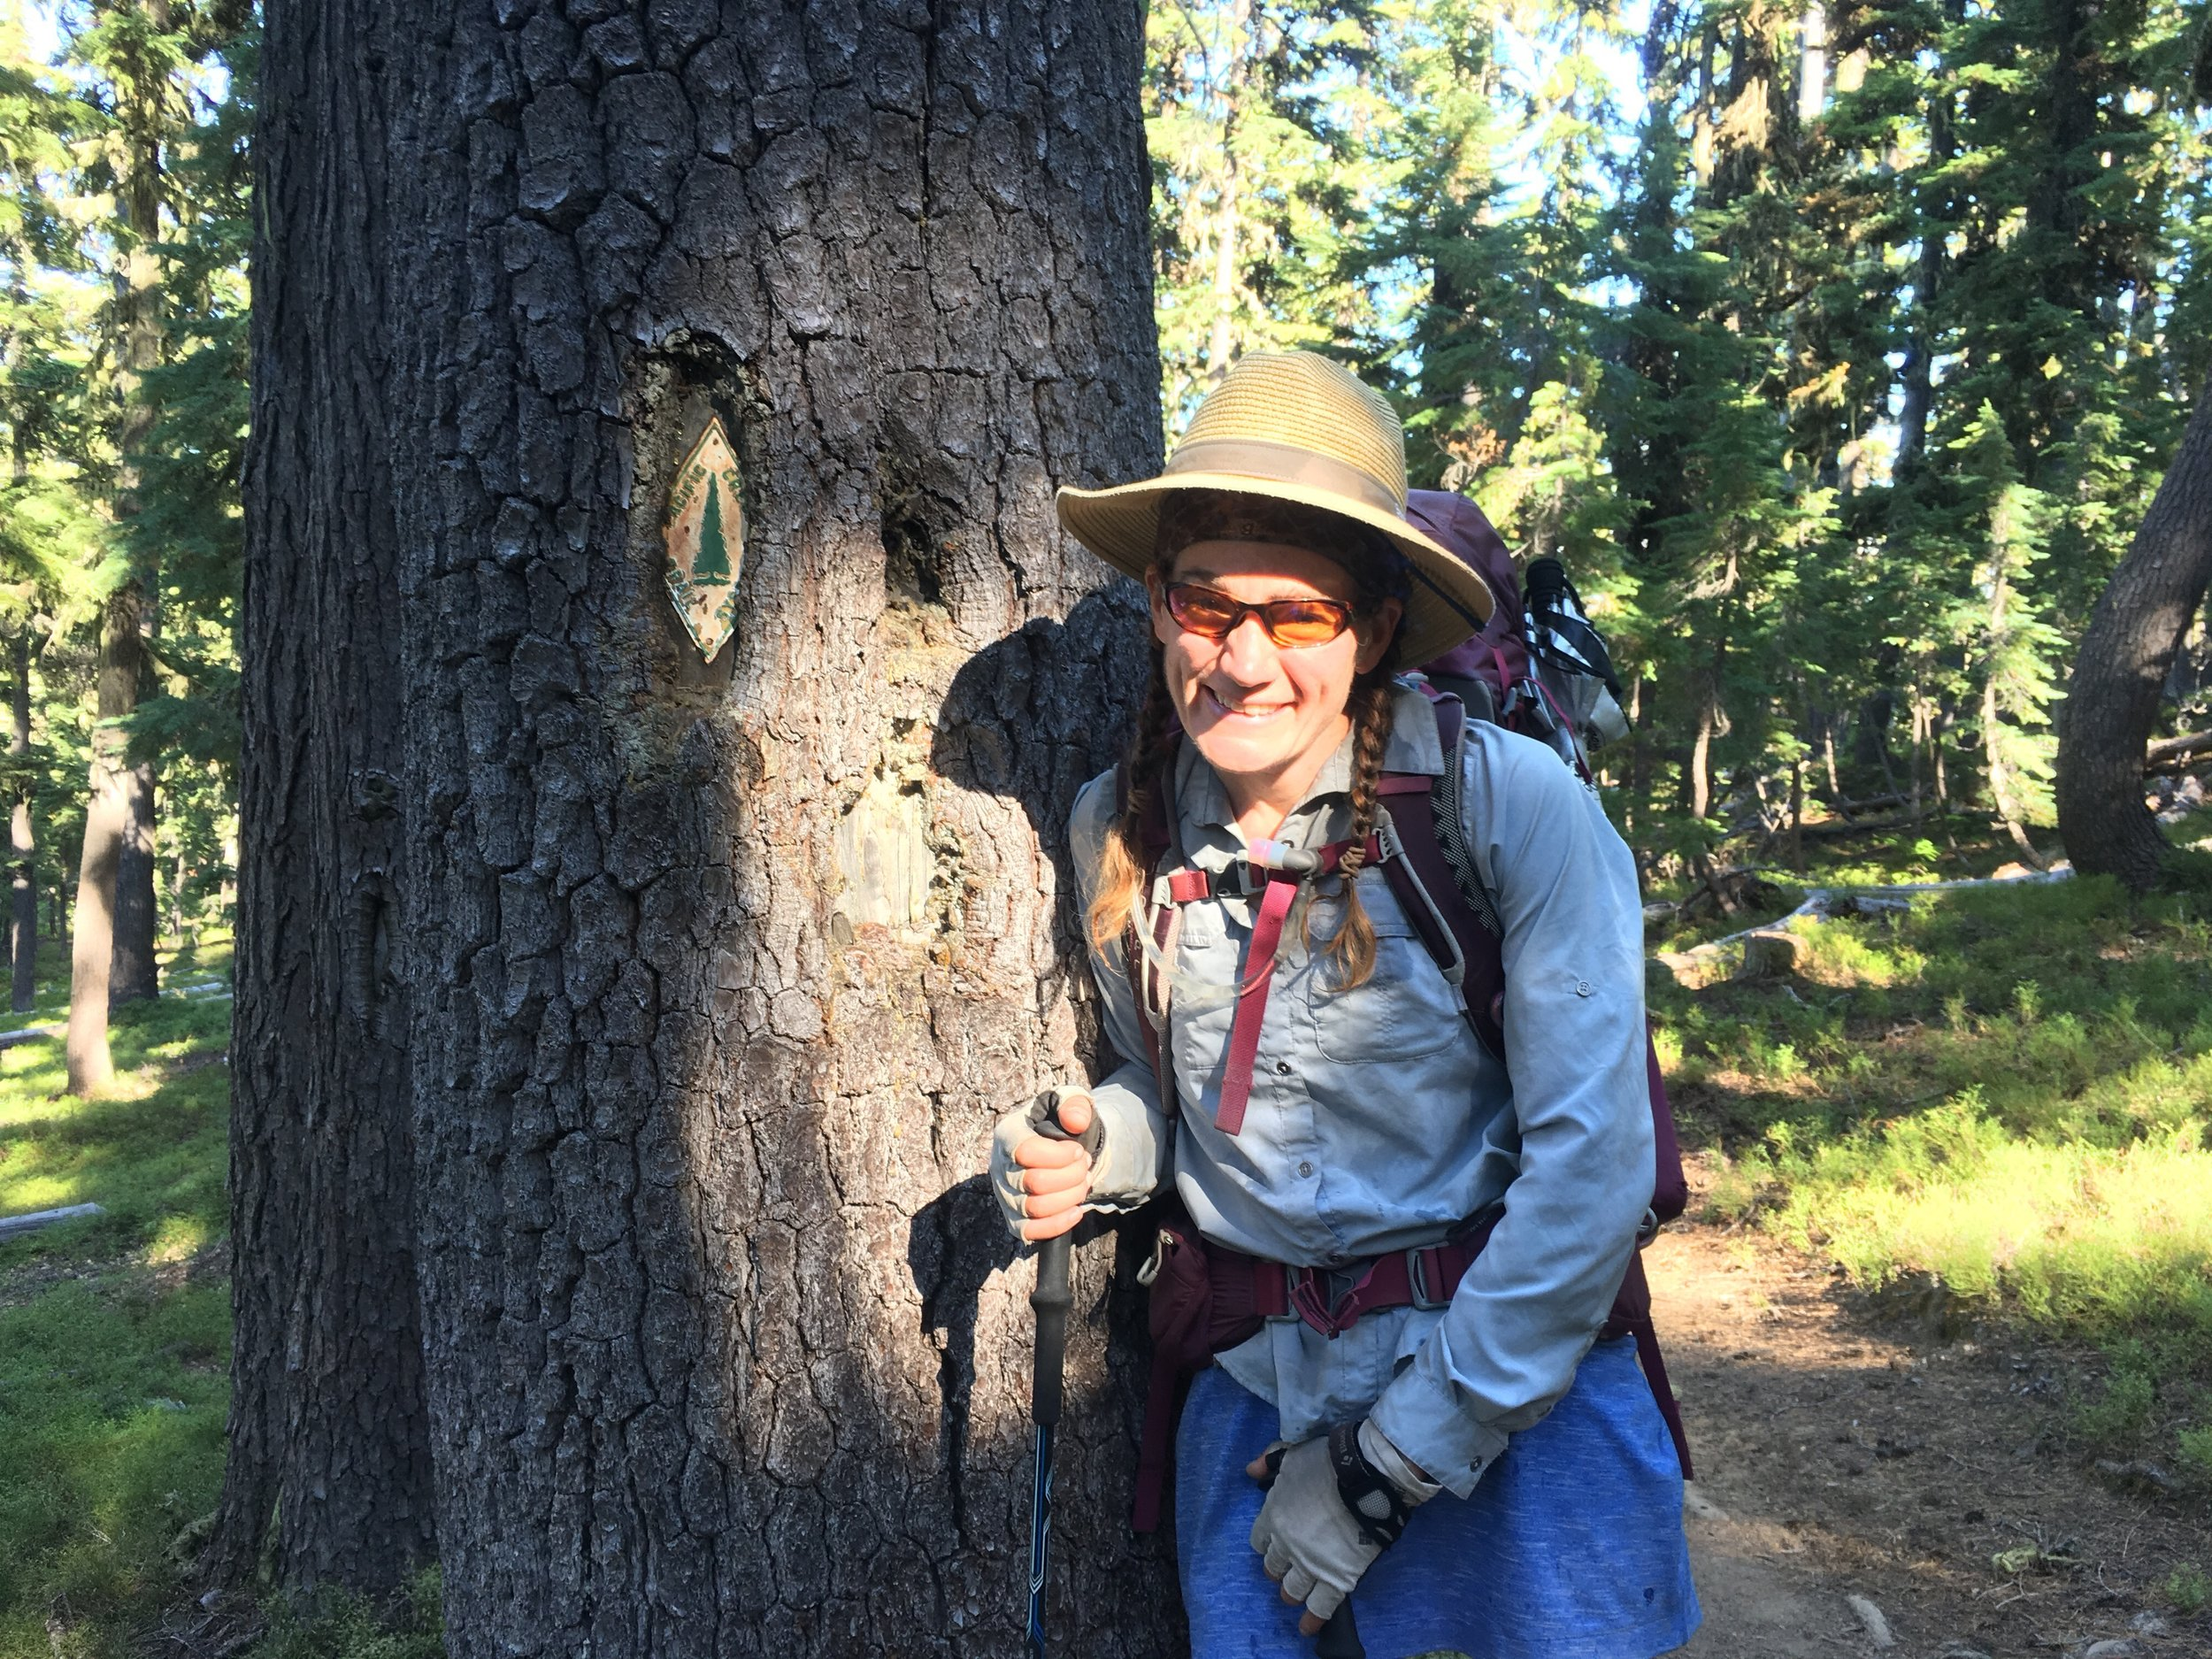 Huckleberry excited to be back on the PCT and some relative shade.